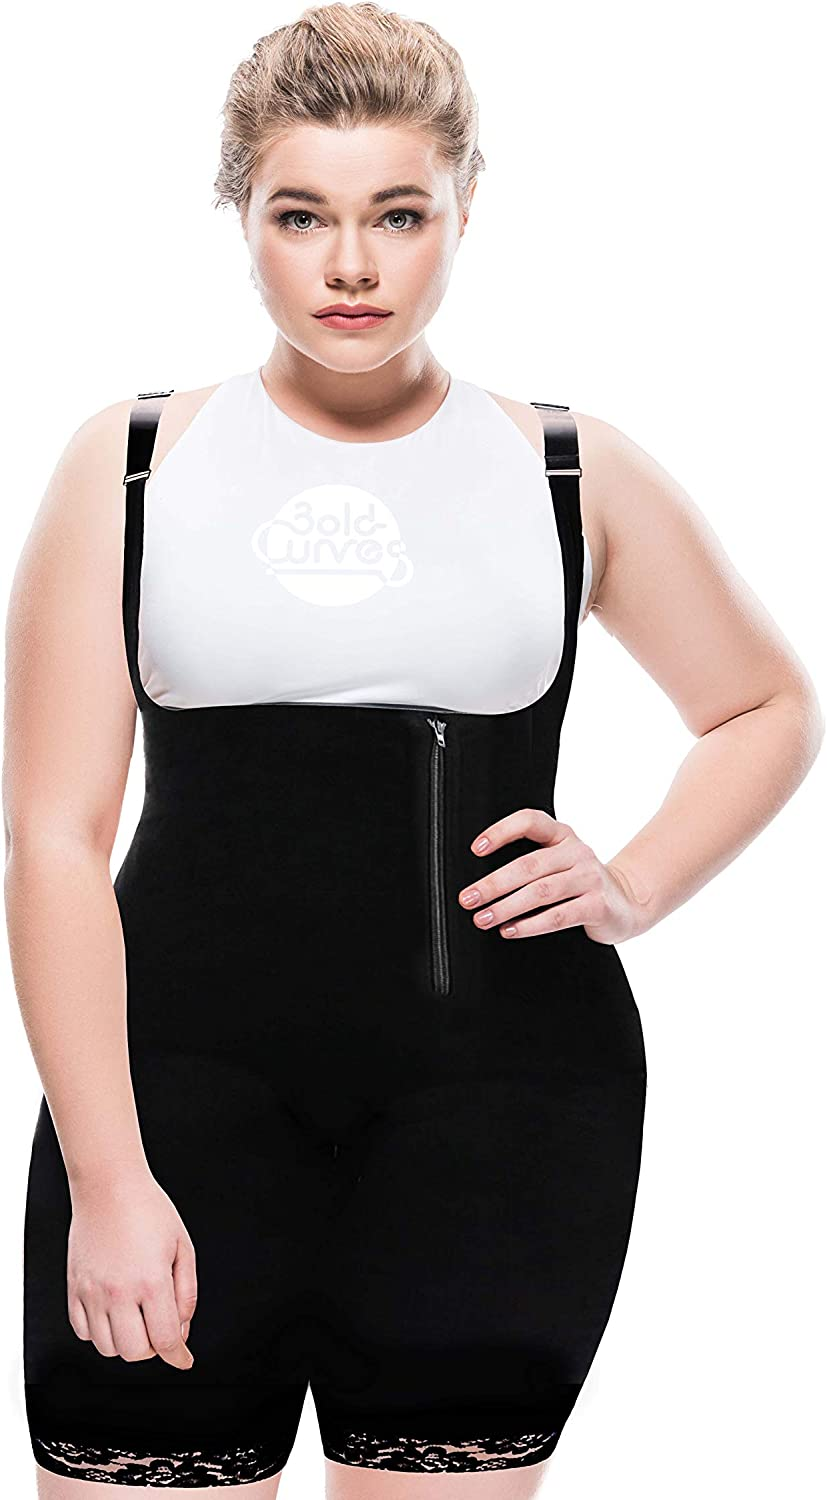 BoldShapes Shapewear Online limited product Black Body Shaper for New product! New type S Size - Women Plus